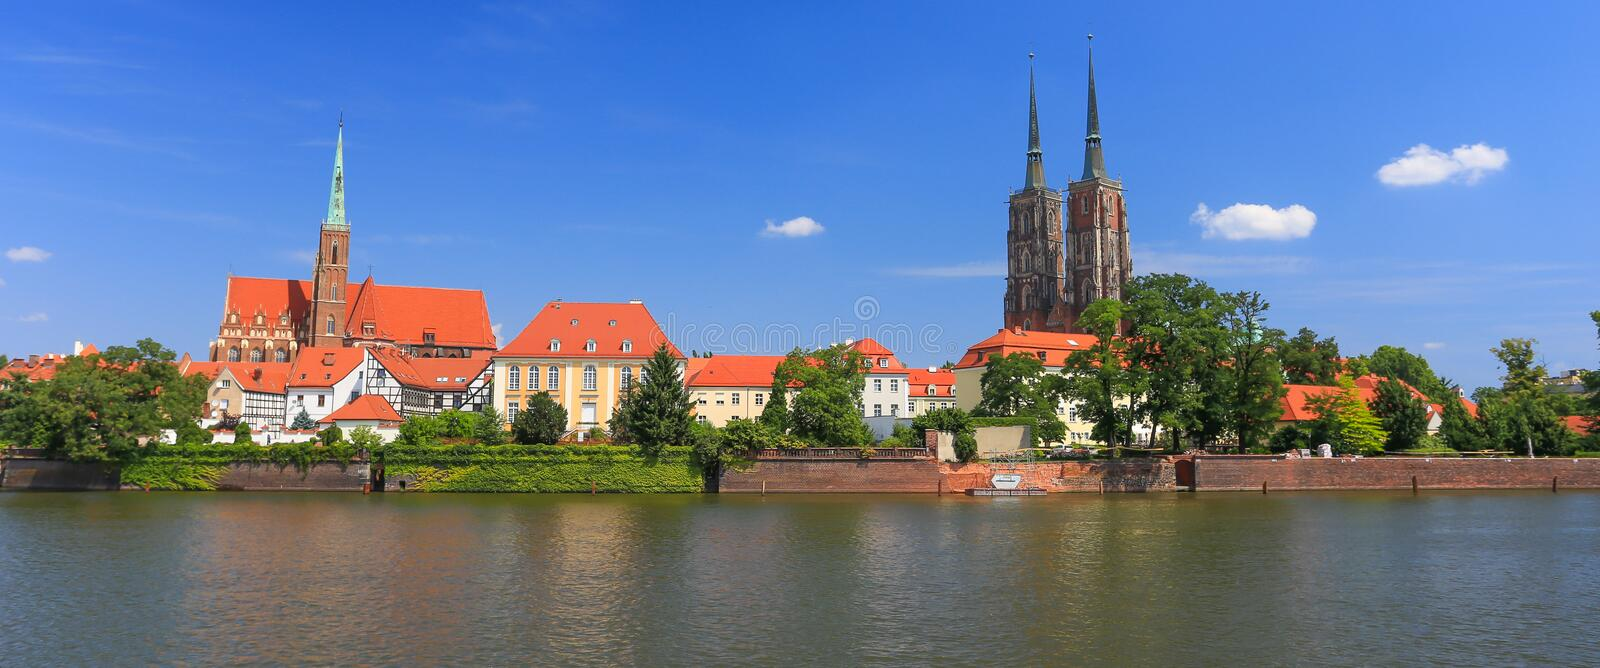 Download A View Of The Wroclaw.Poland Stock Image - Image of european, town: 68811671